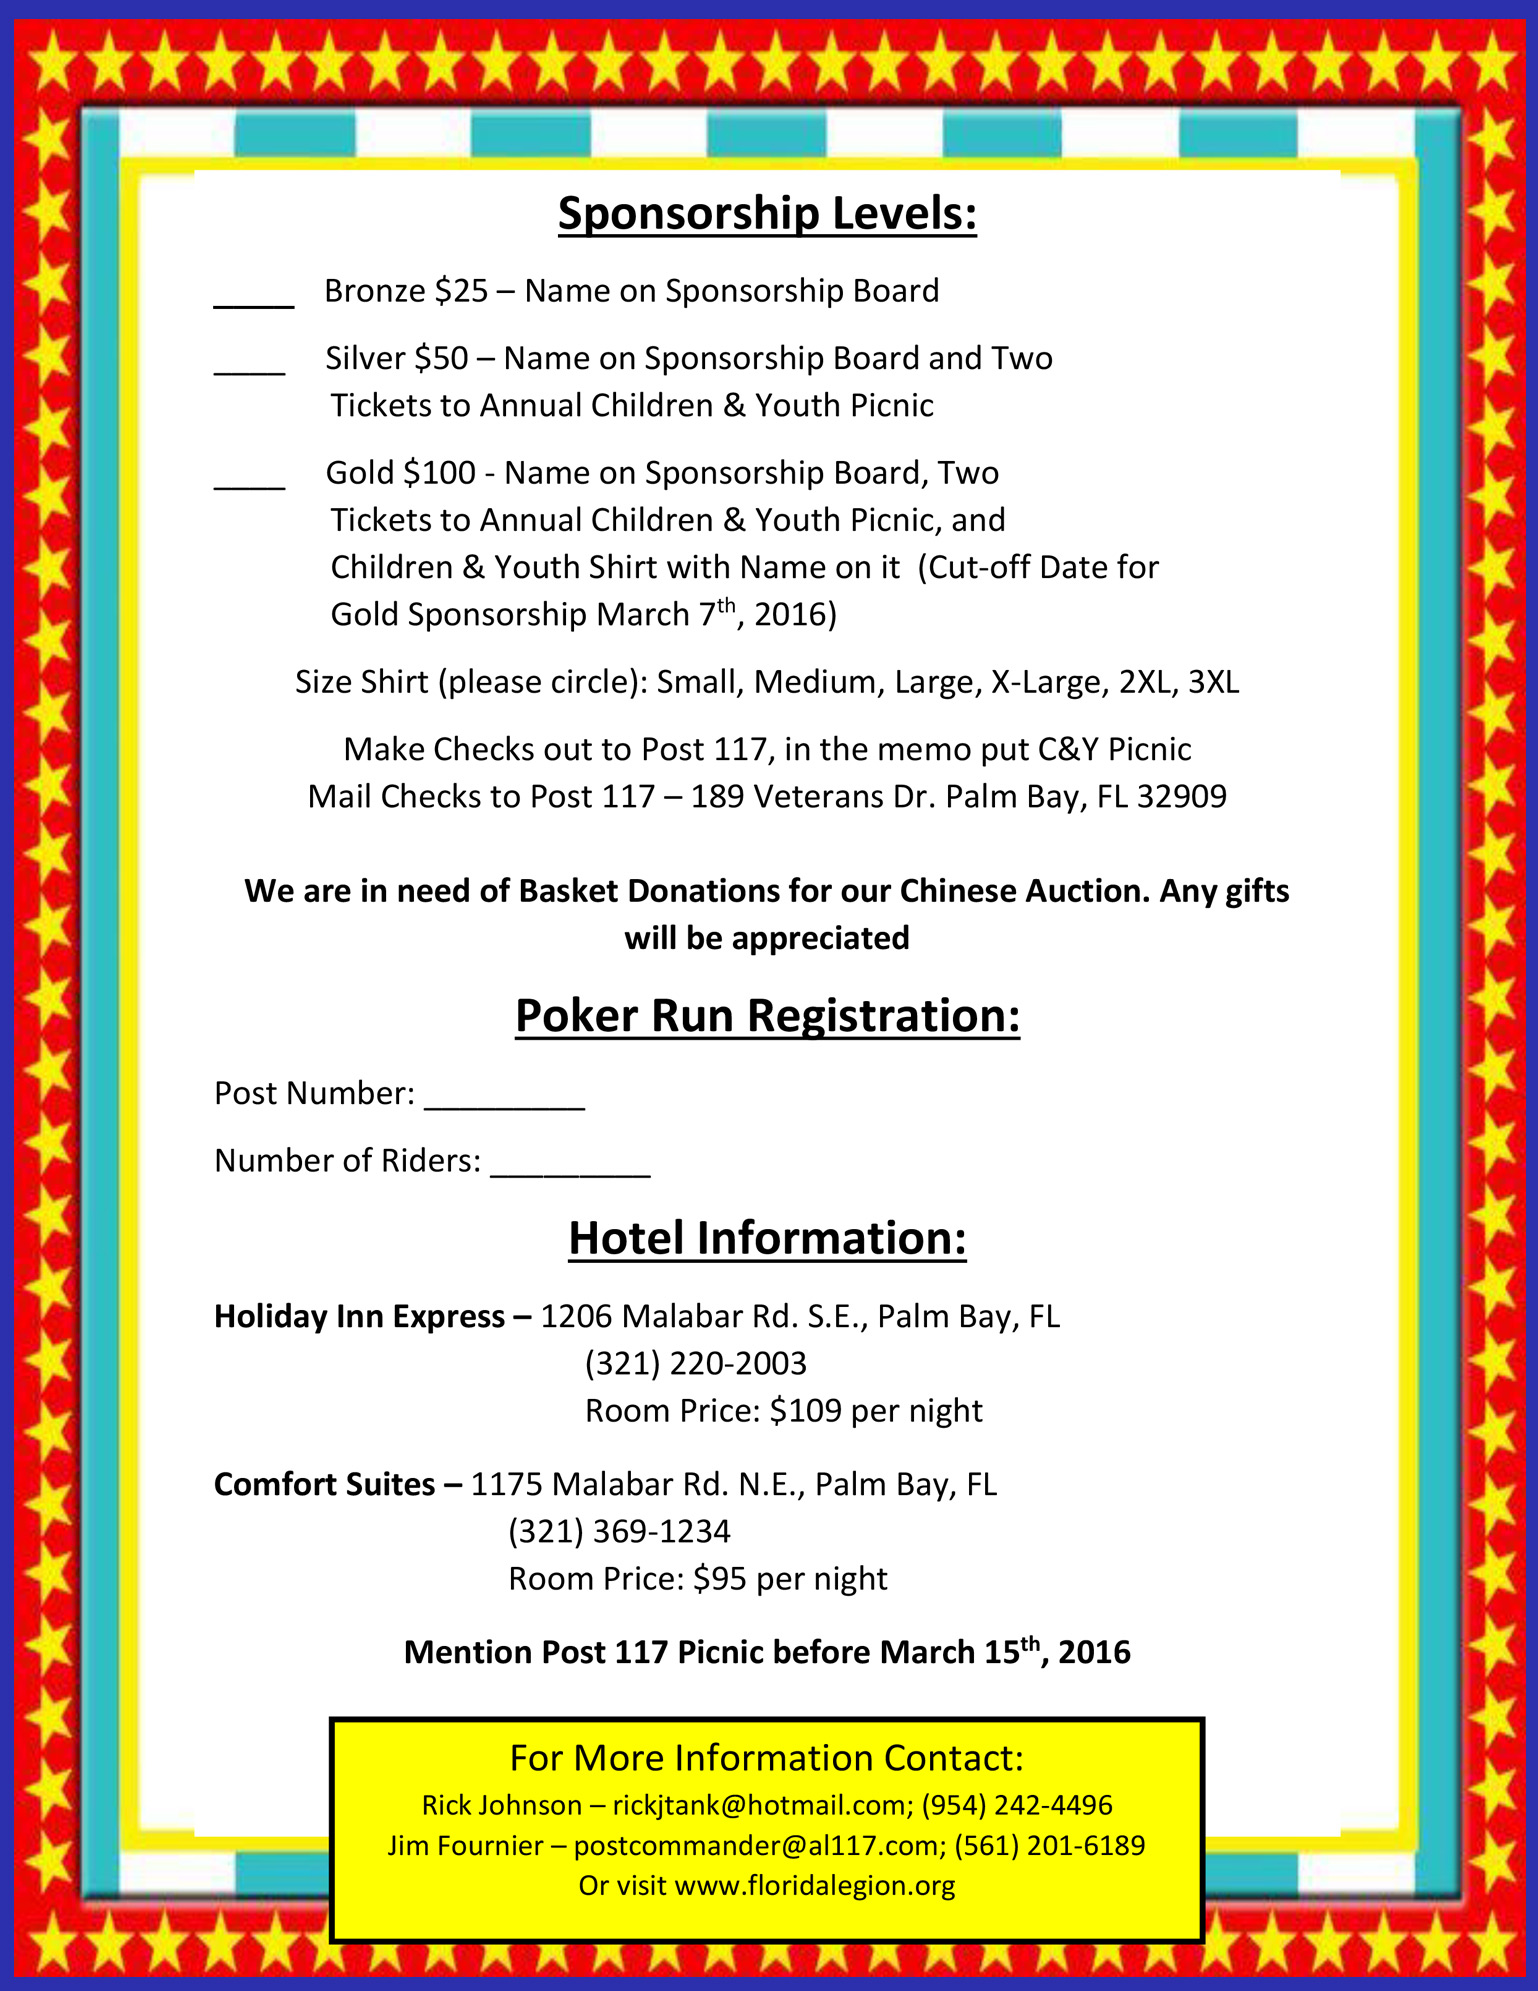 Annual Children and Youth Picnic Info